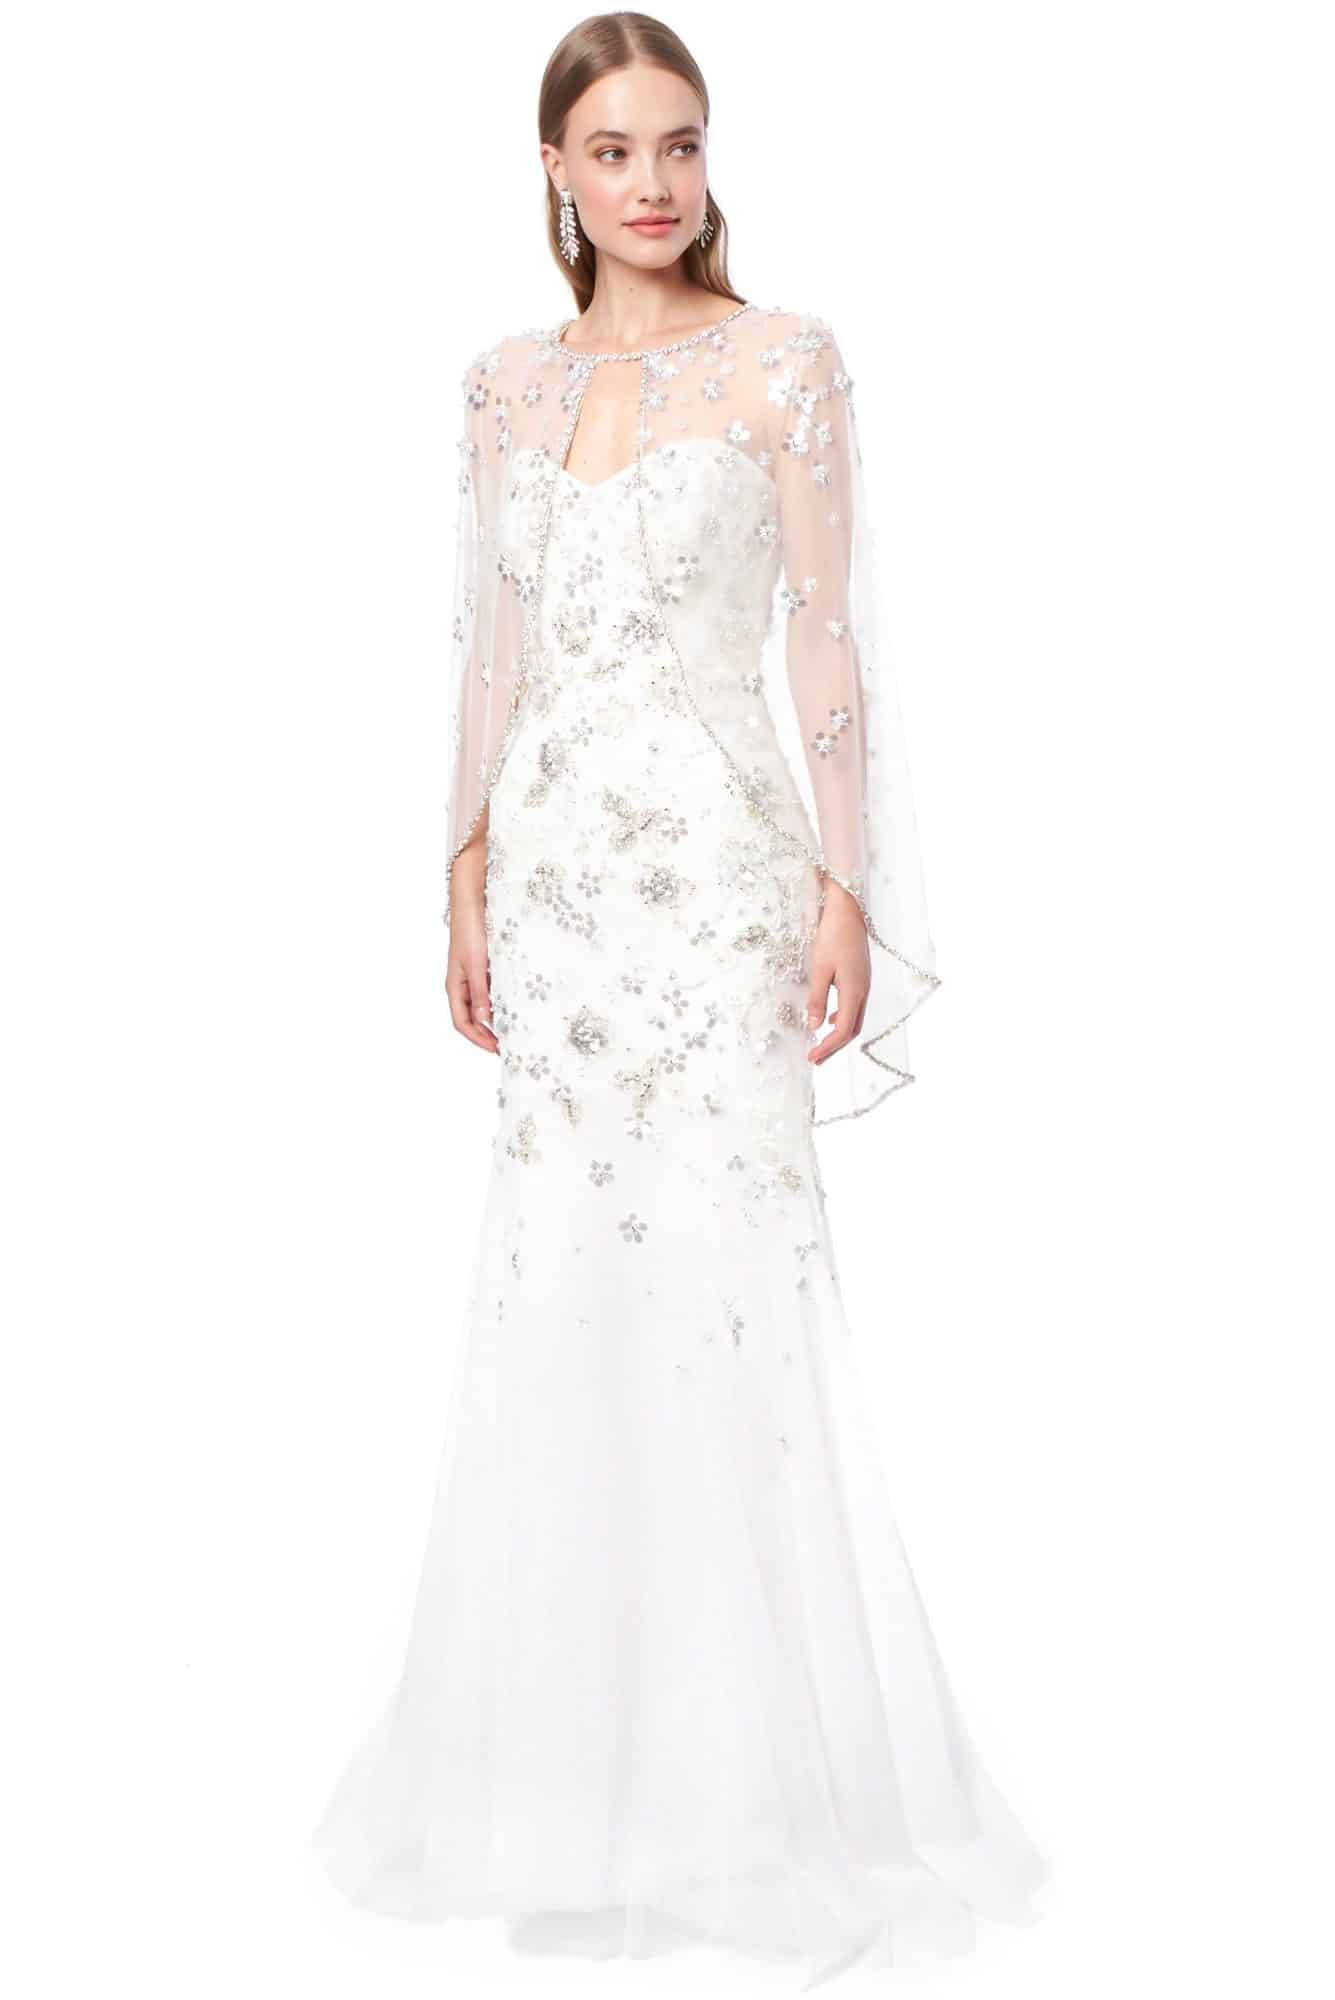 a wedding dress with cape by Jenny Packham